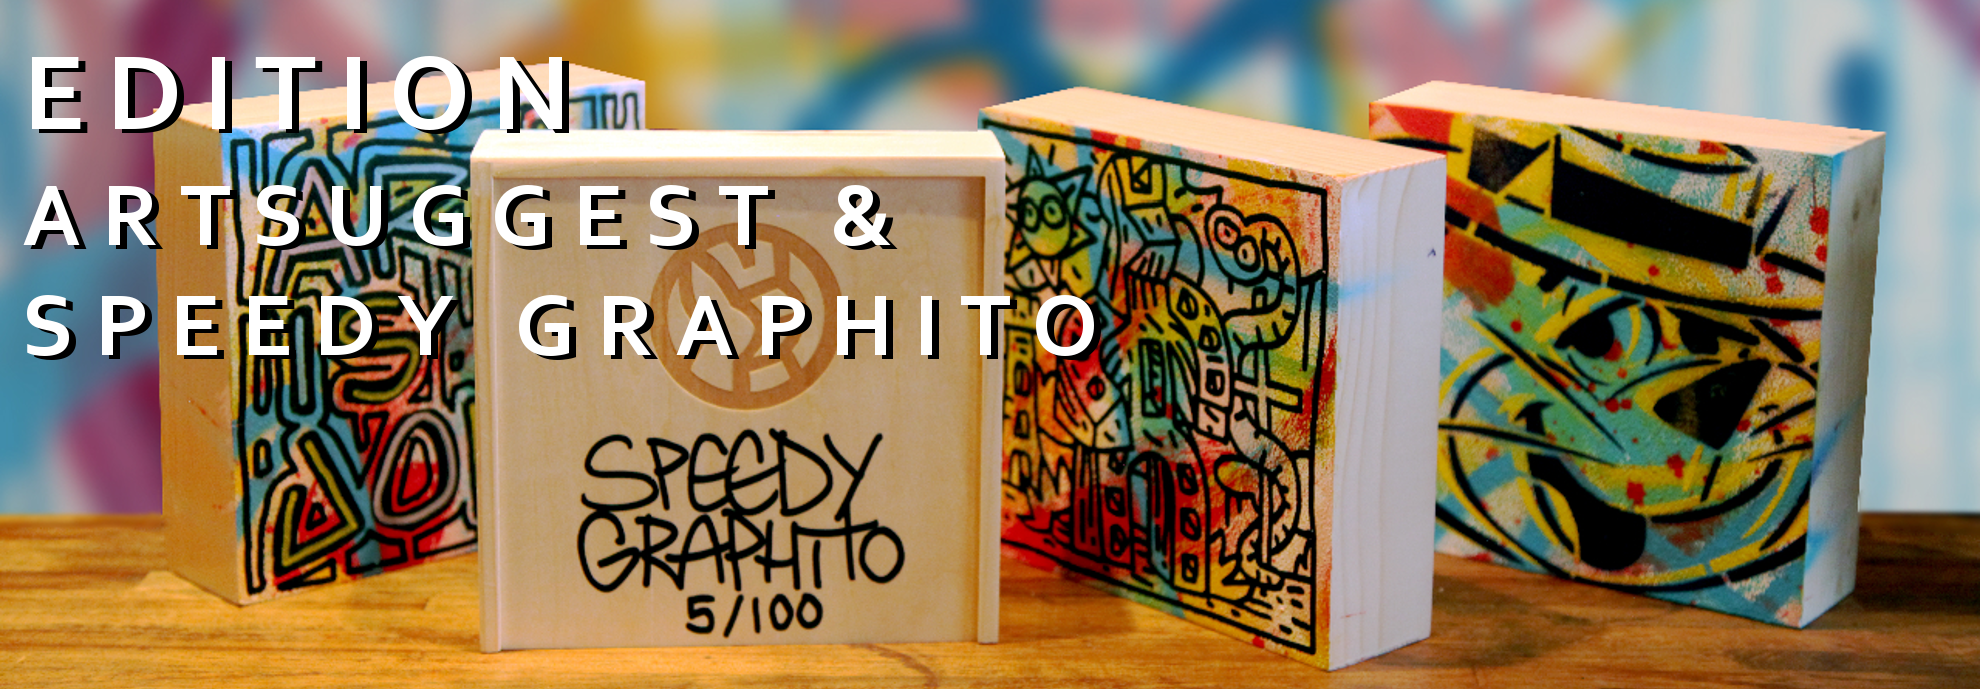 Coffret SPEEDY GRAPHITO